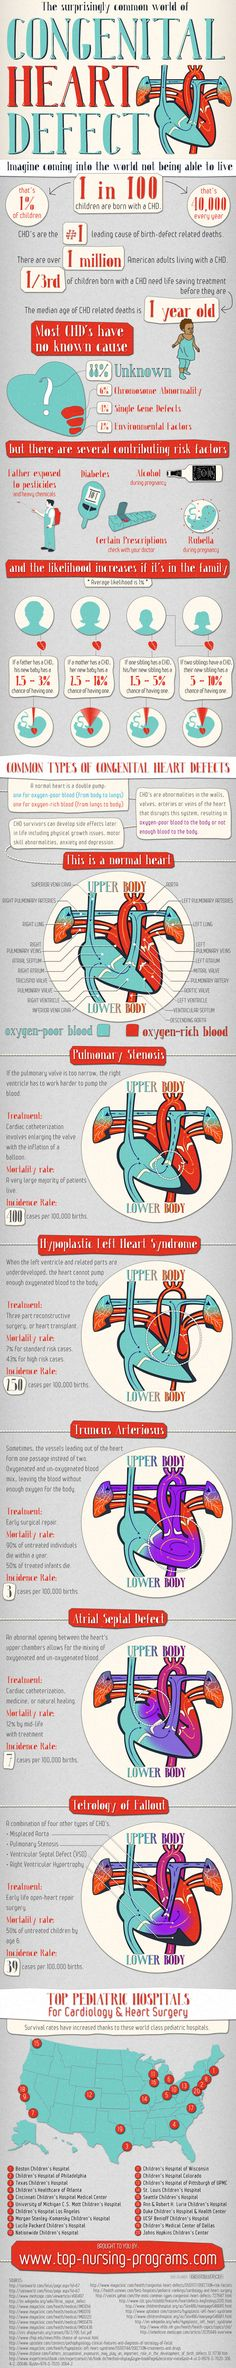 Educating parents about congenital heart defects (Infographic)